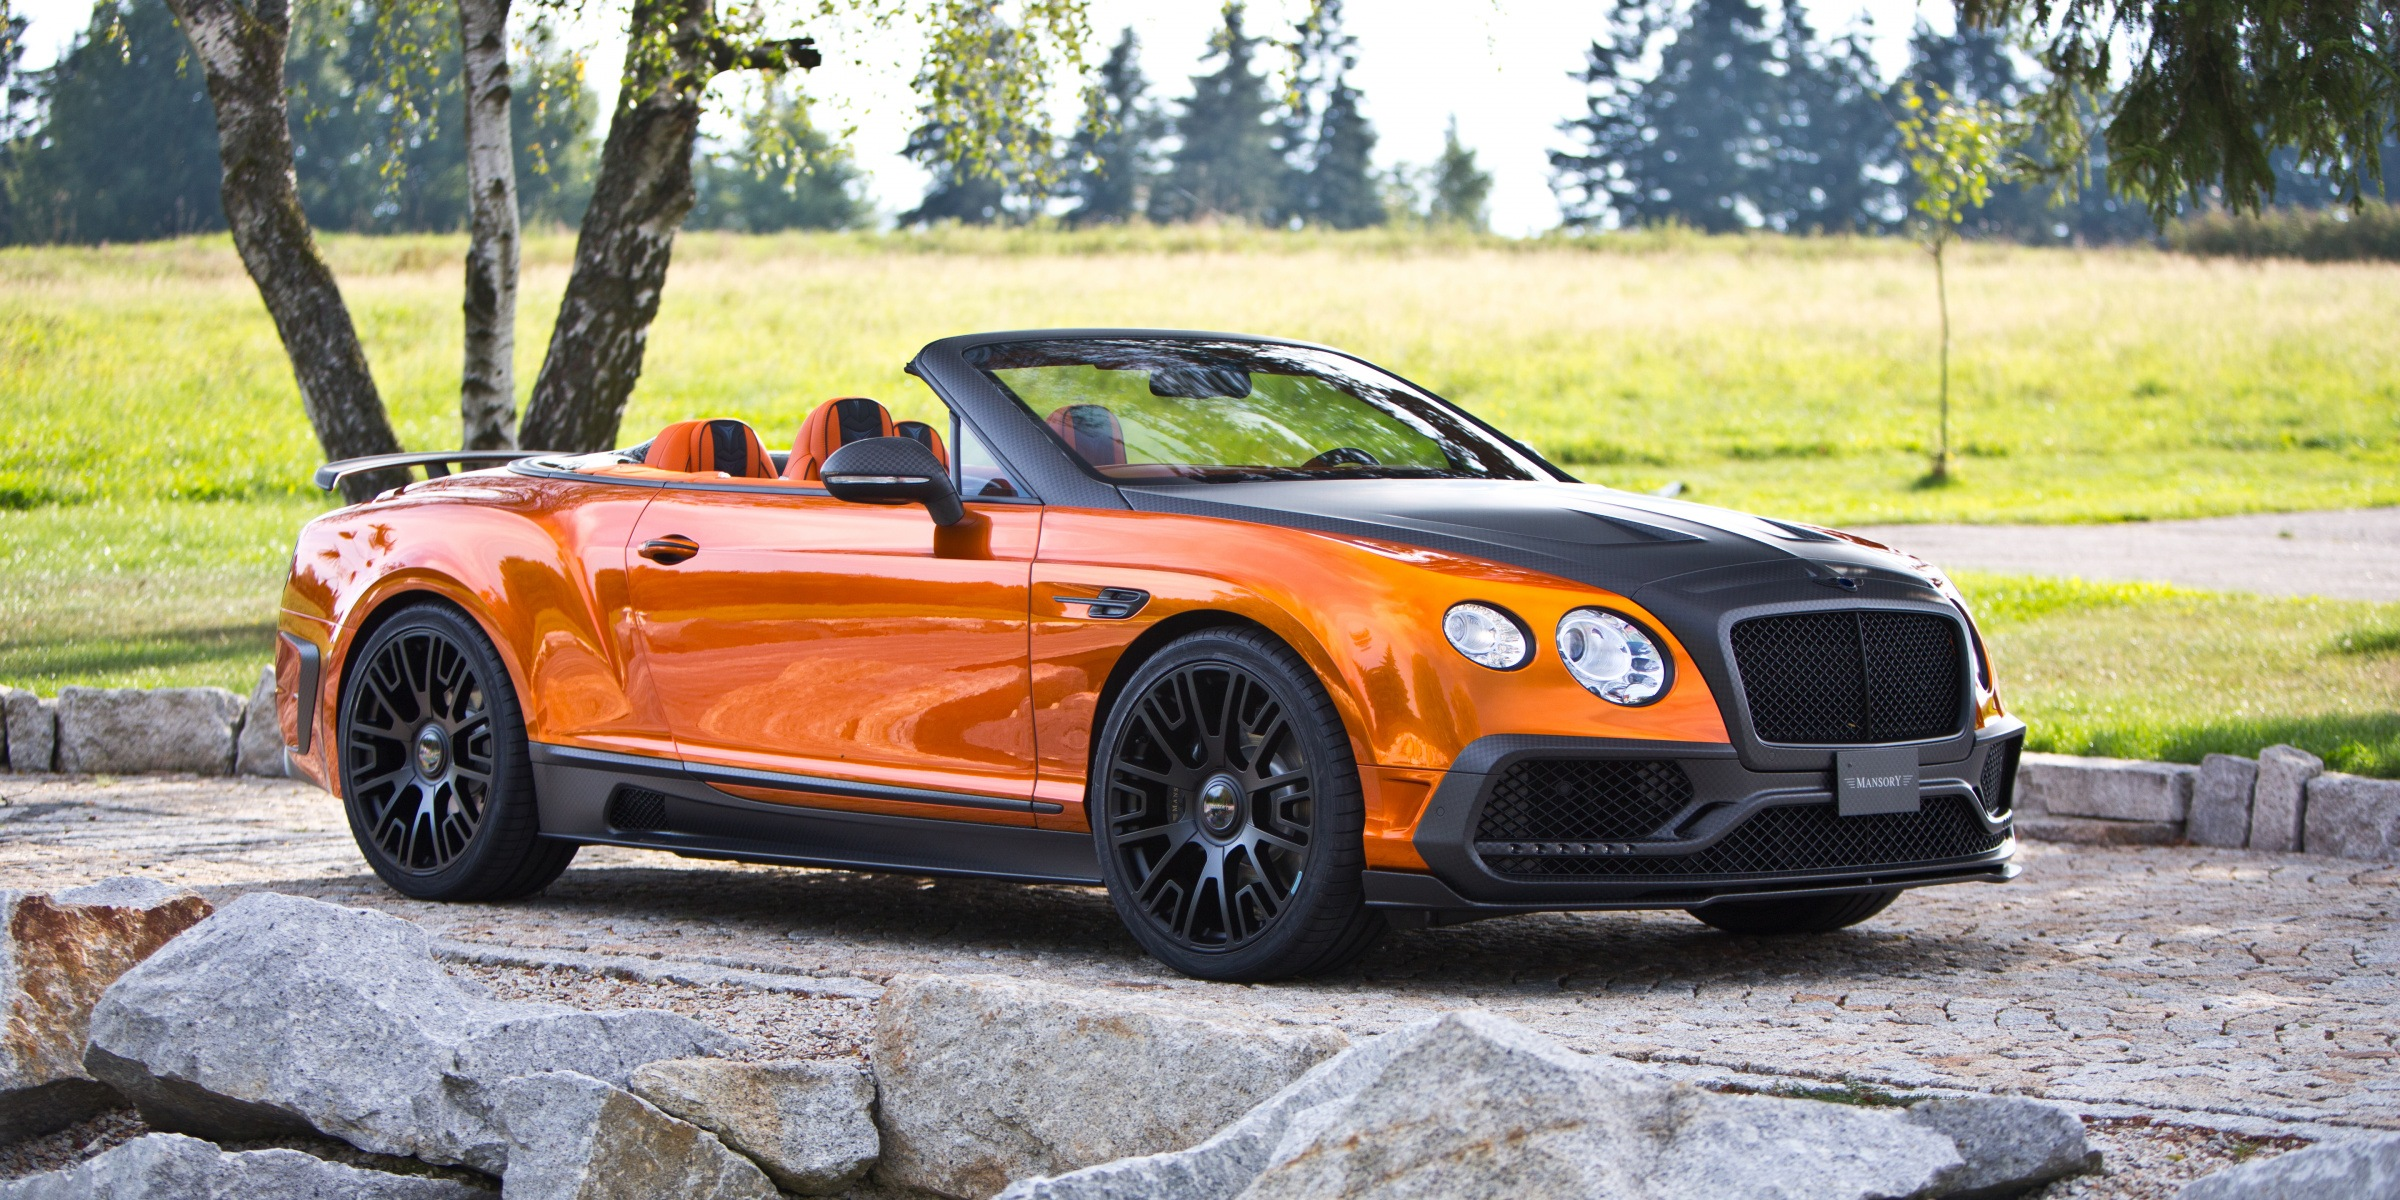 mansory_bentley_continental_gt_2016_05.jpg